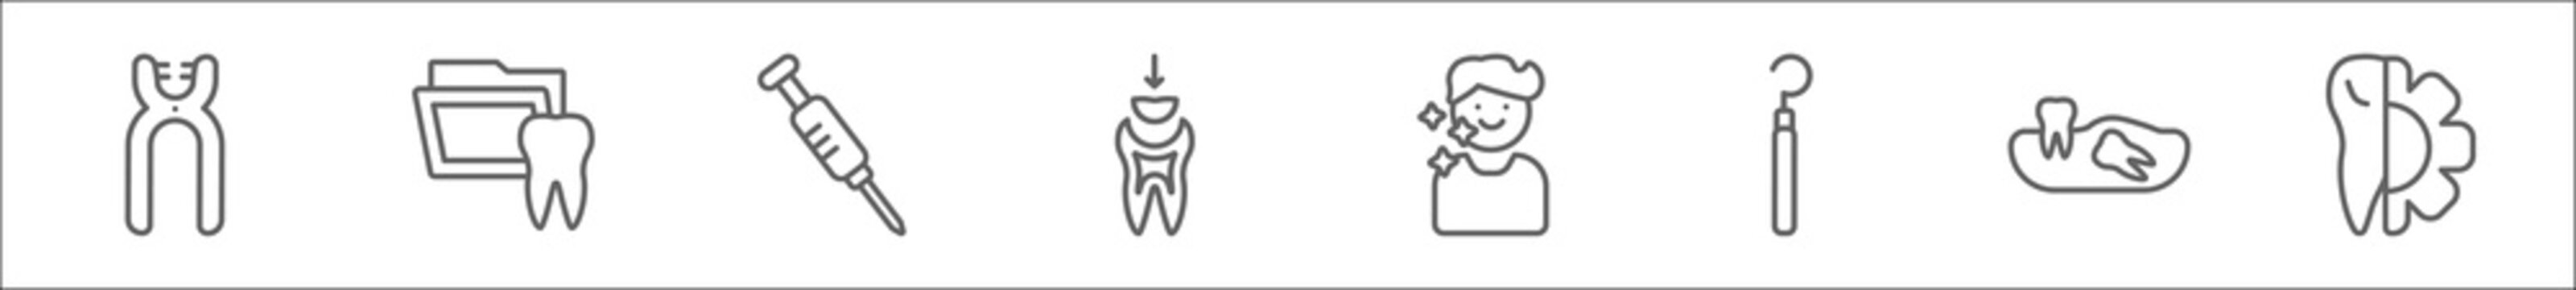 outline set of dentist line icons. linear vector icons such as forceps of dentist tools, dental folder, empty syringe, dental filling, healthy boy, dental probe, wisdom tooth, apicoectomy